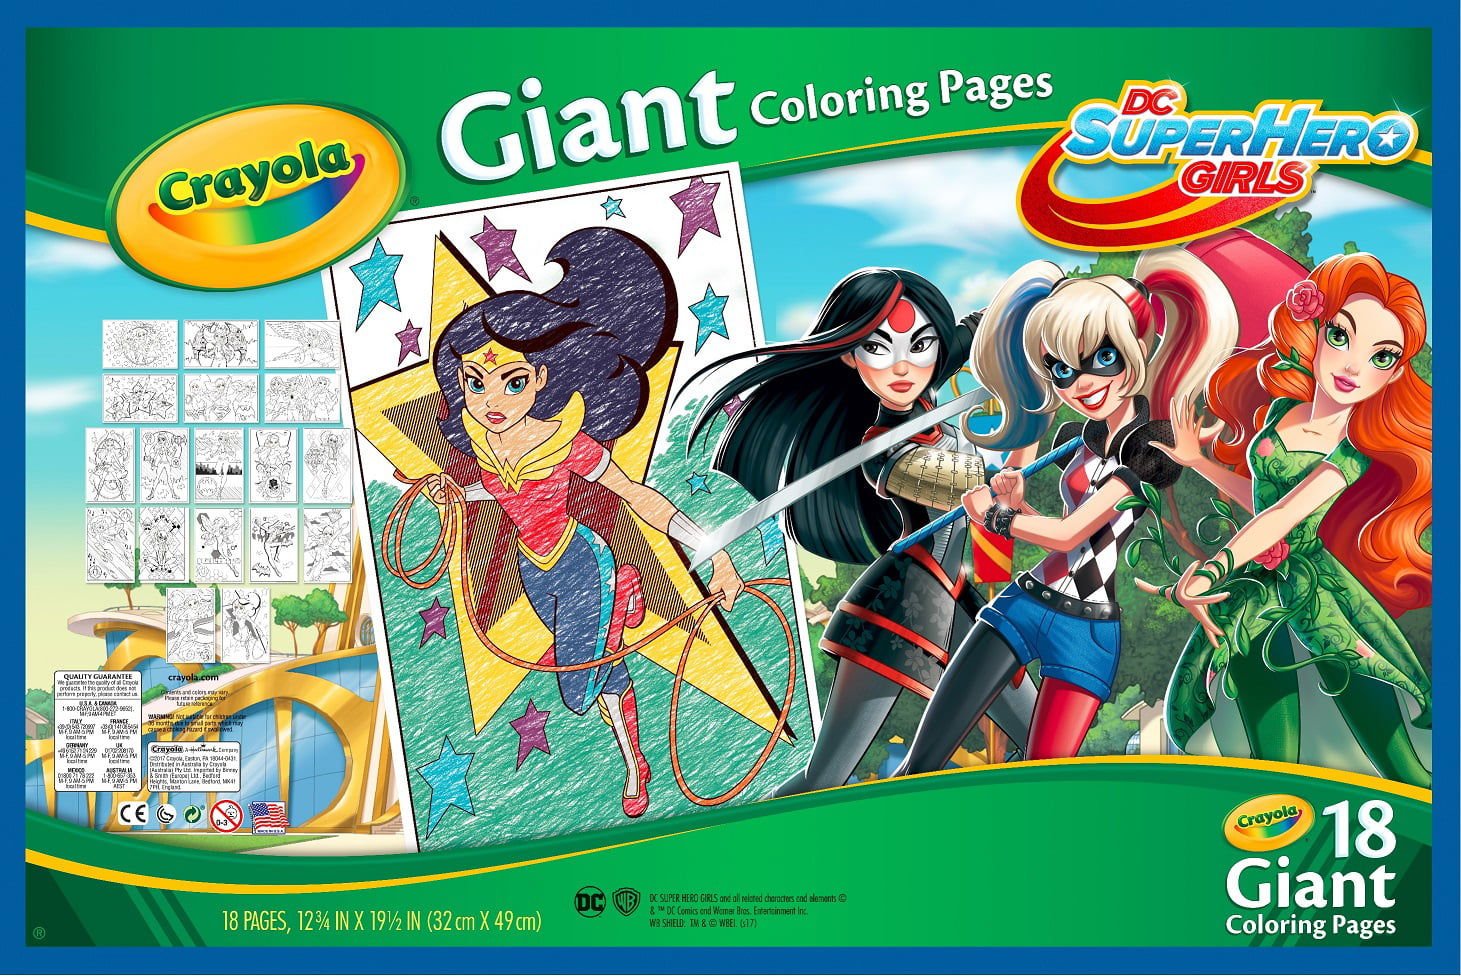 - Crayola Giant Coloring Pages Featuring Dc Girl Superheroes, 18